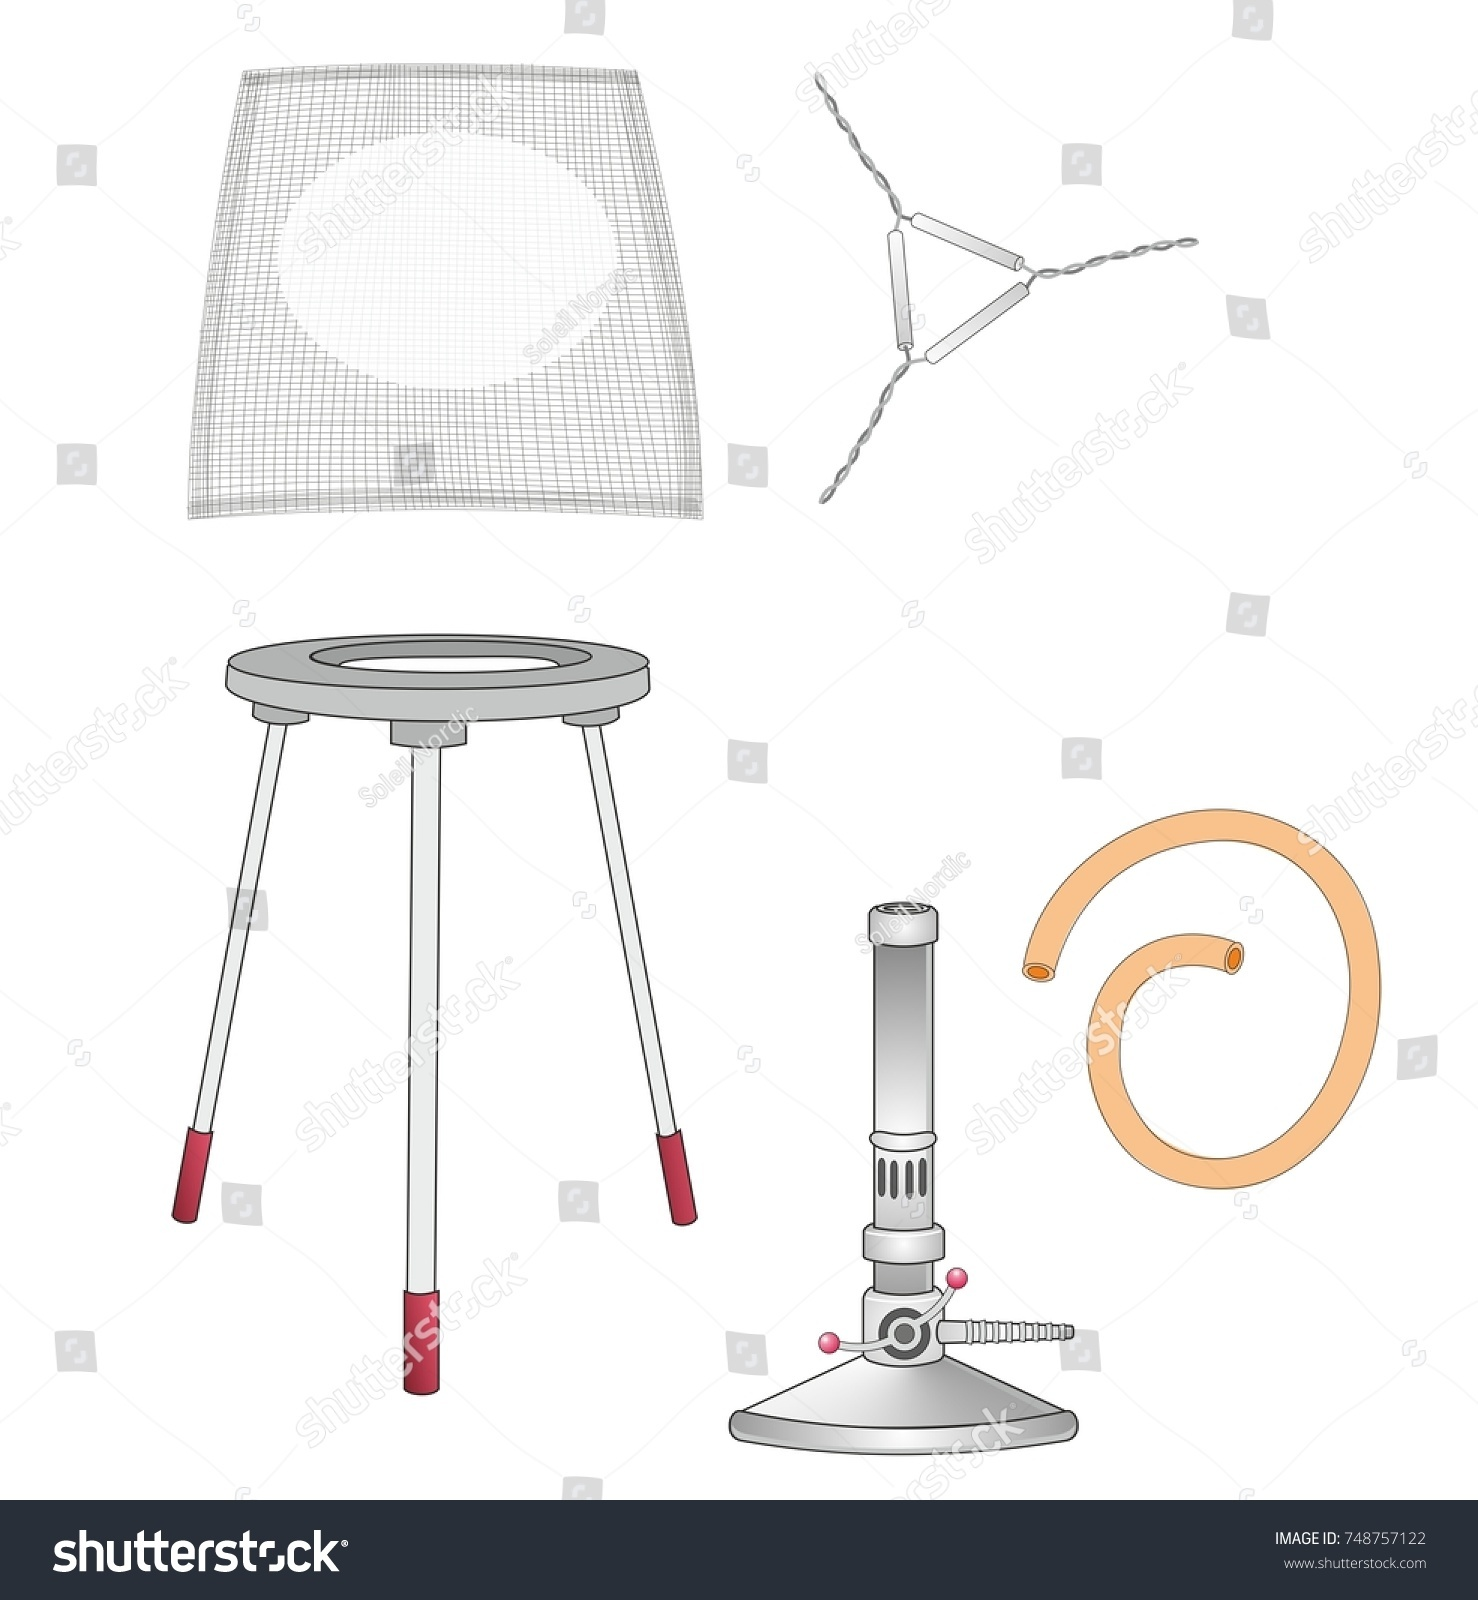 Set laboratory equipments bunsen burner tripod stock illustration a set of laboratory equipments a bunsen burner a tripod and a wire gauze pooptronica Choice Image